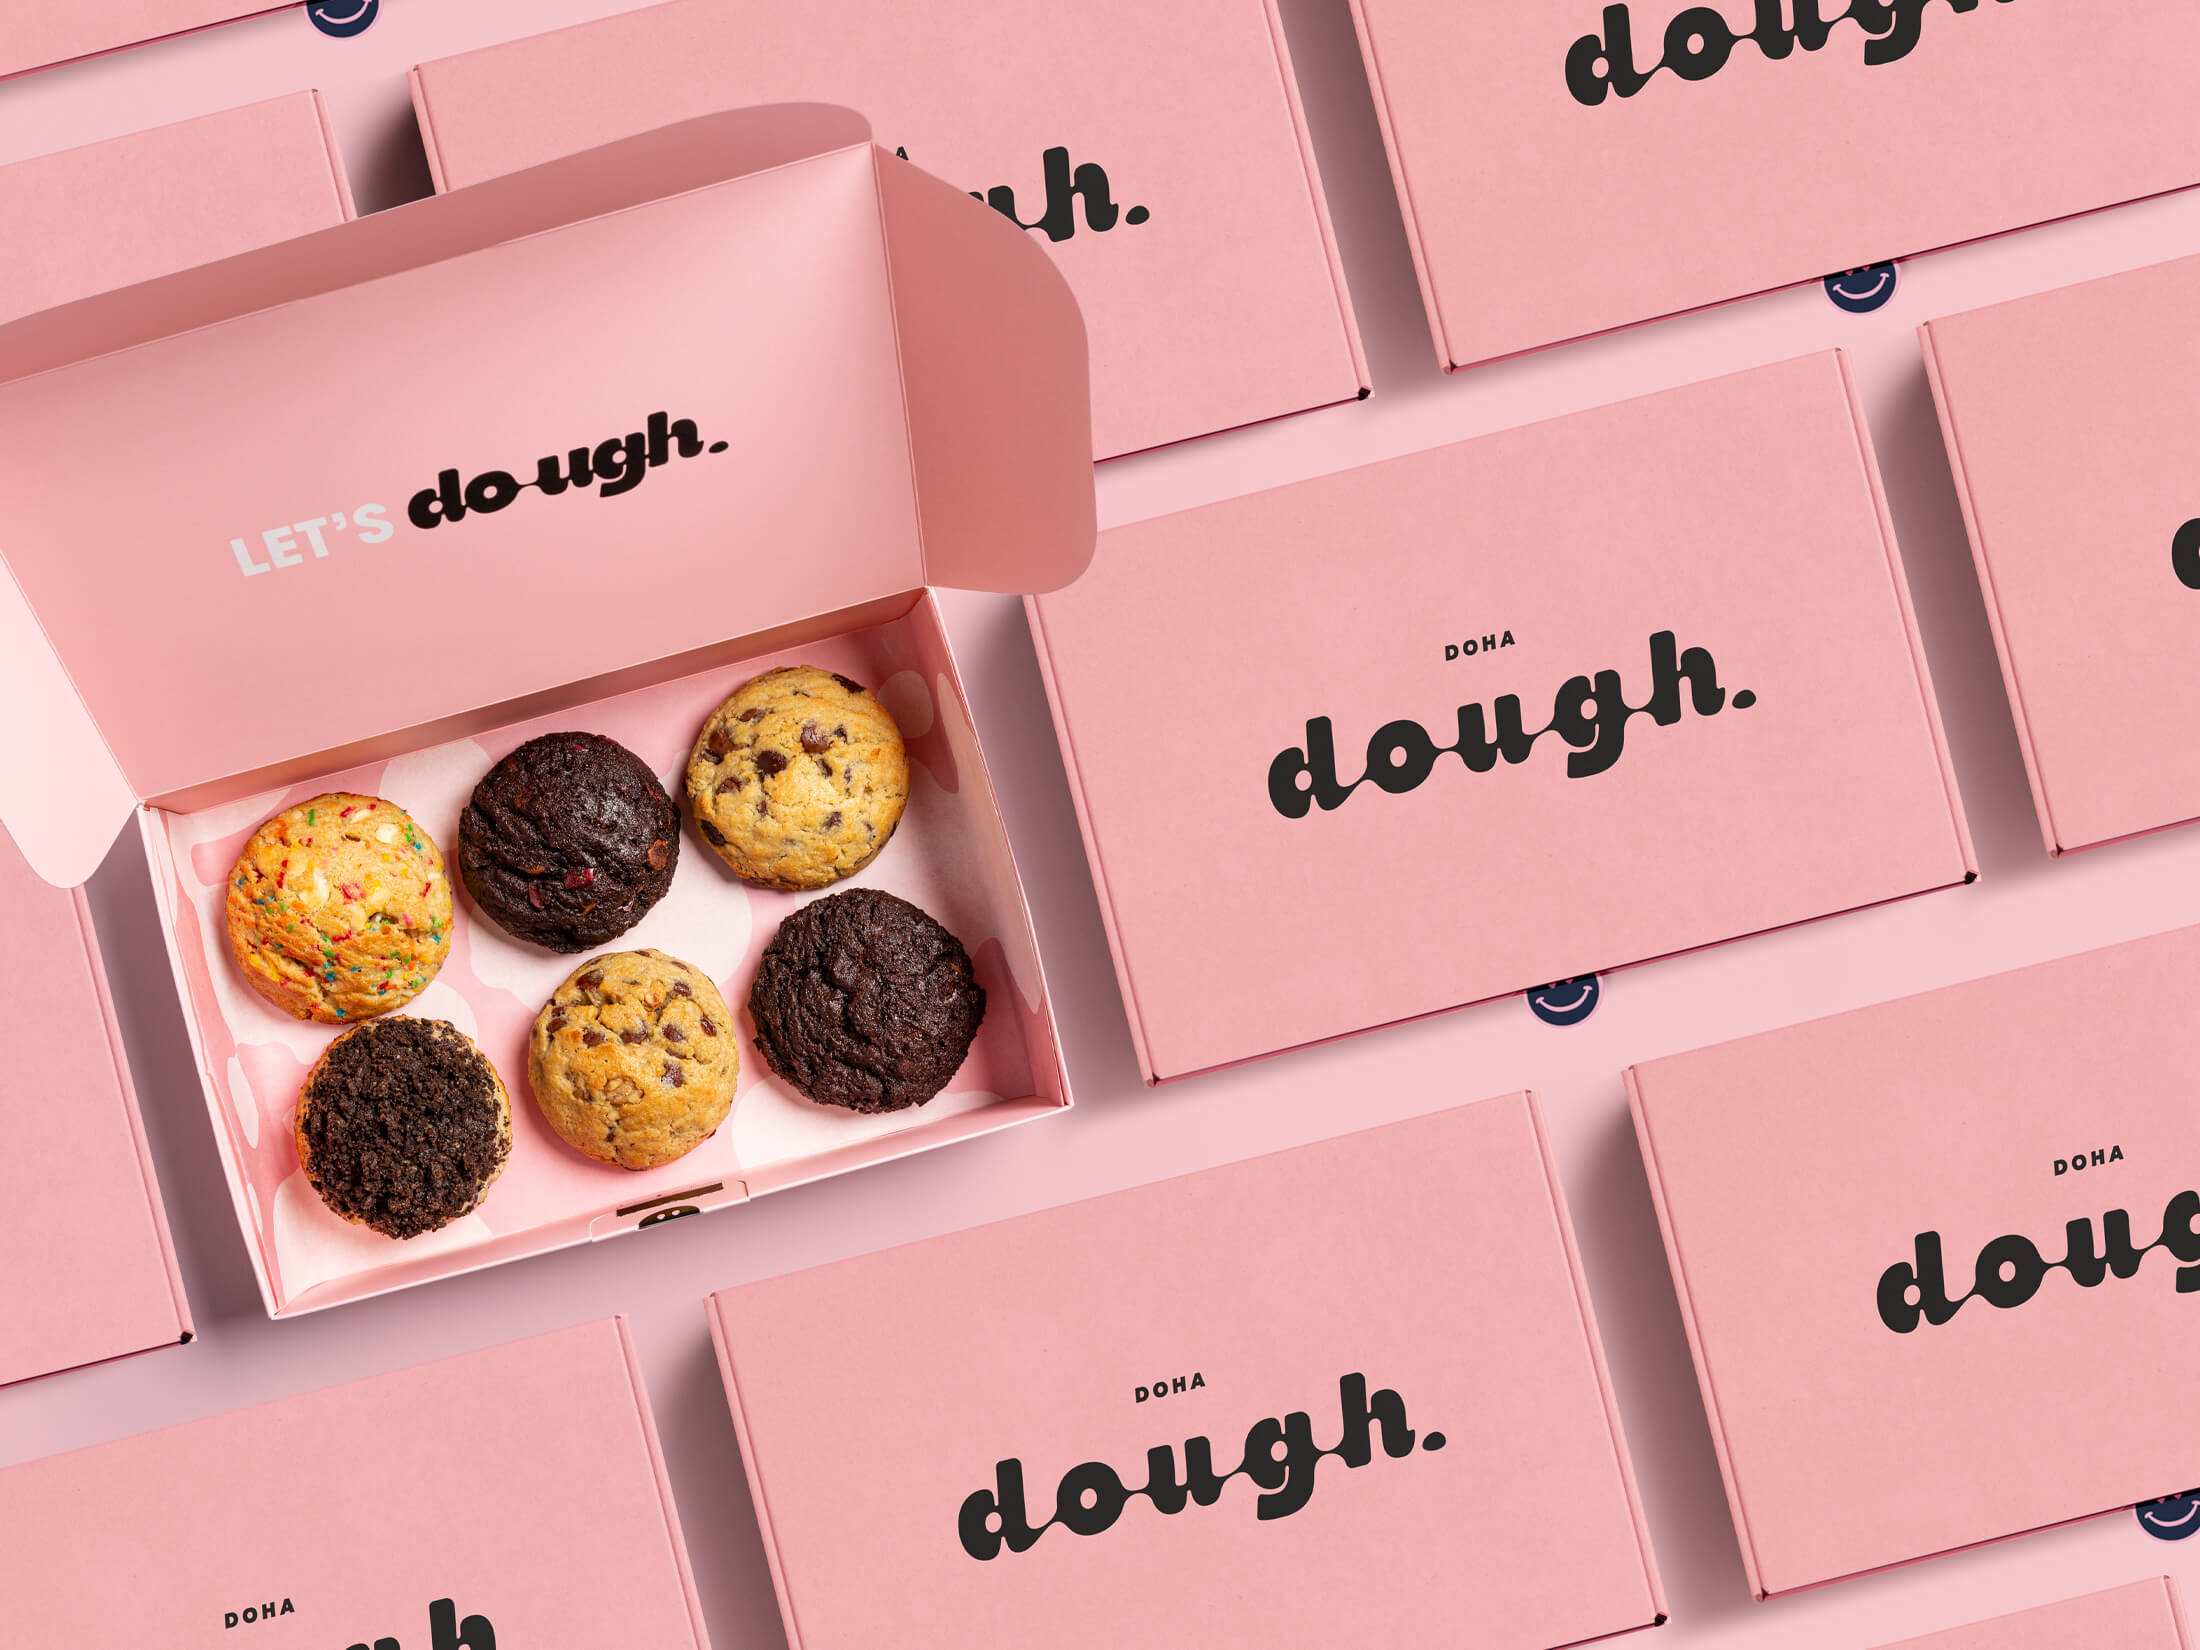 My Creative Get the Dough on the Road by Rebranding the New Cookie Company